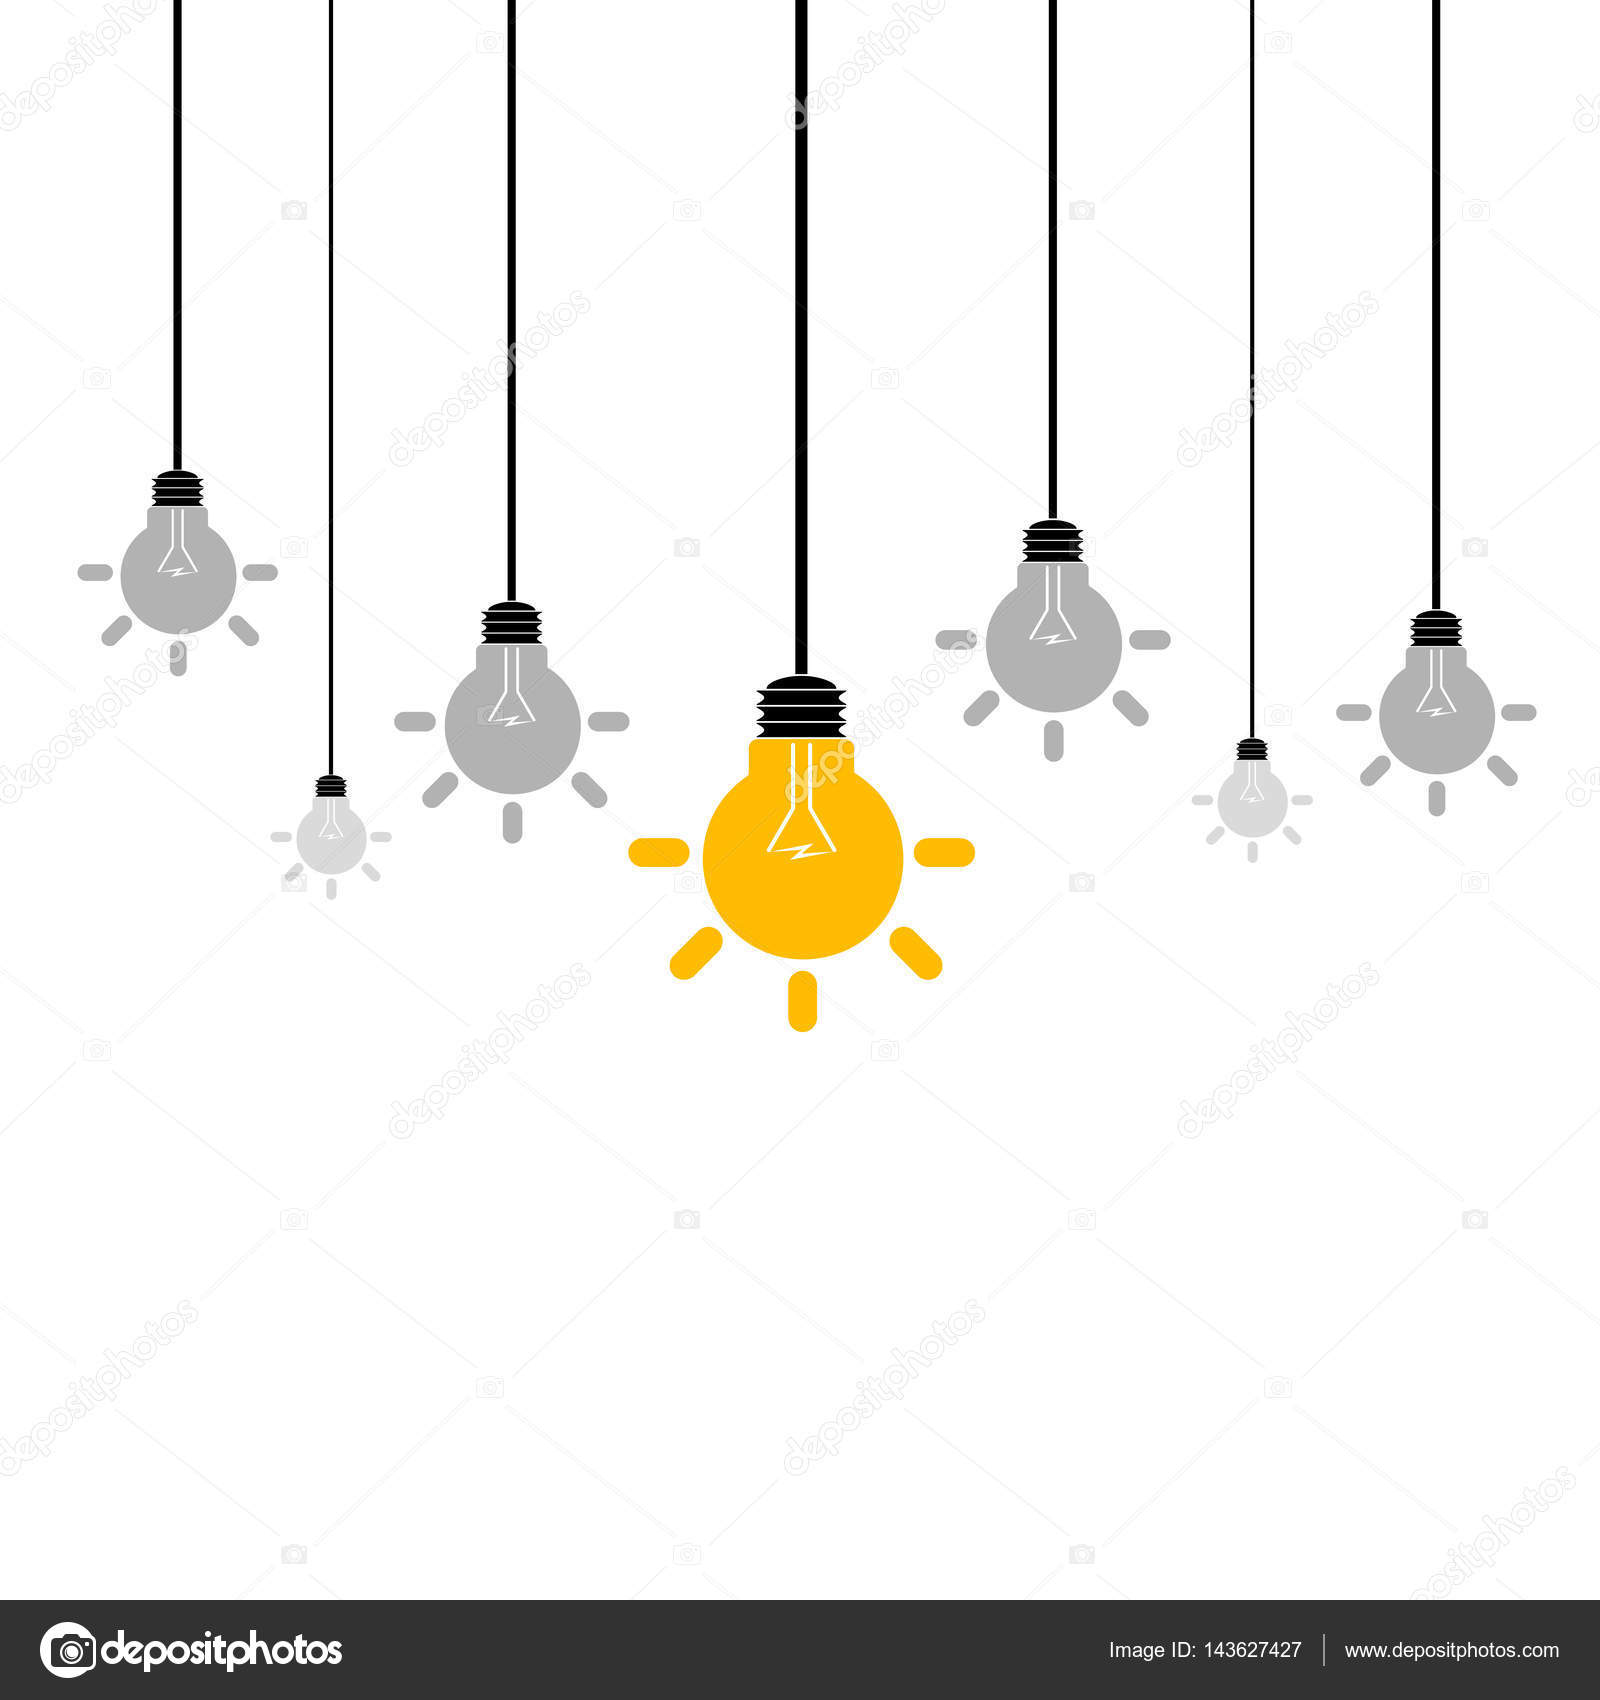 Hanging Lamp Vector: Abstract Hanging Light Bulbs. Vector Illustration.